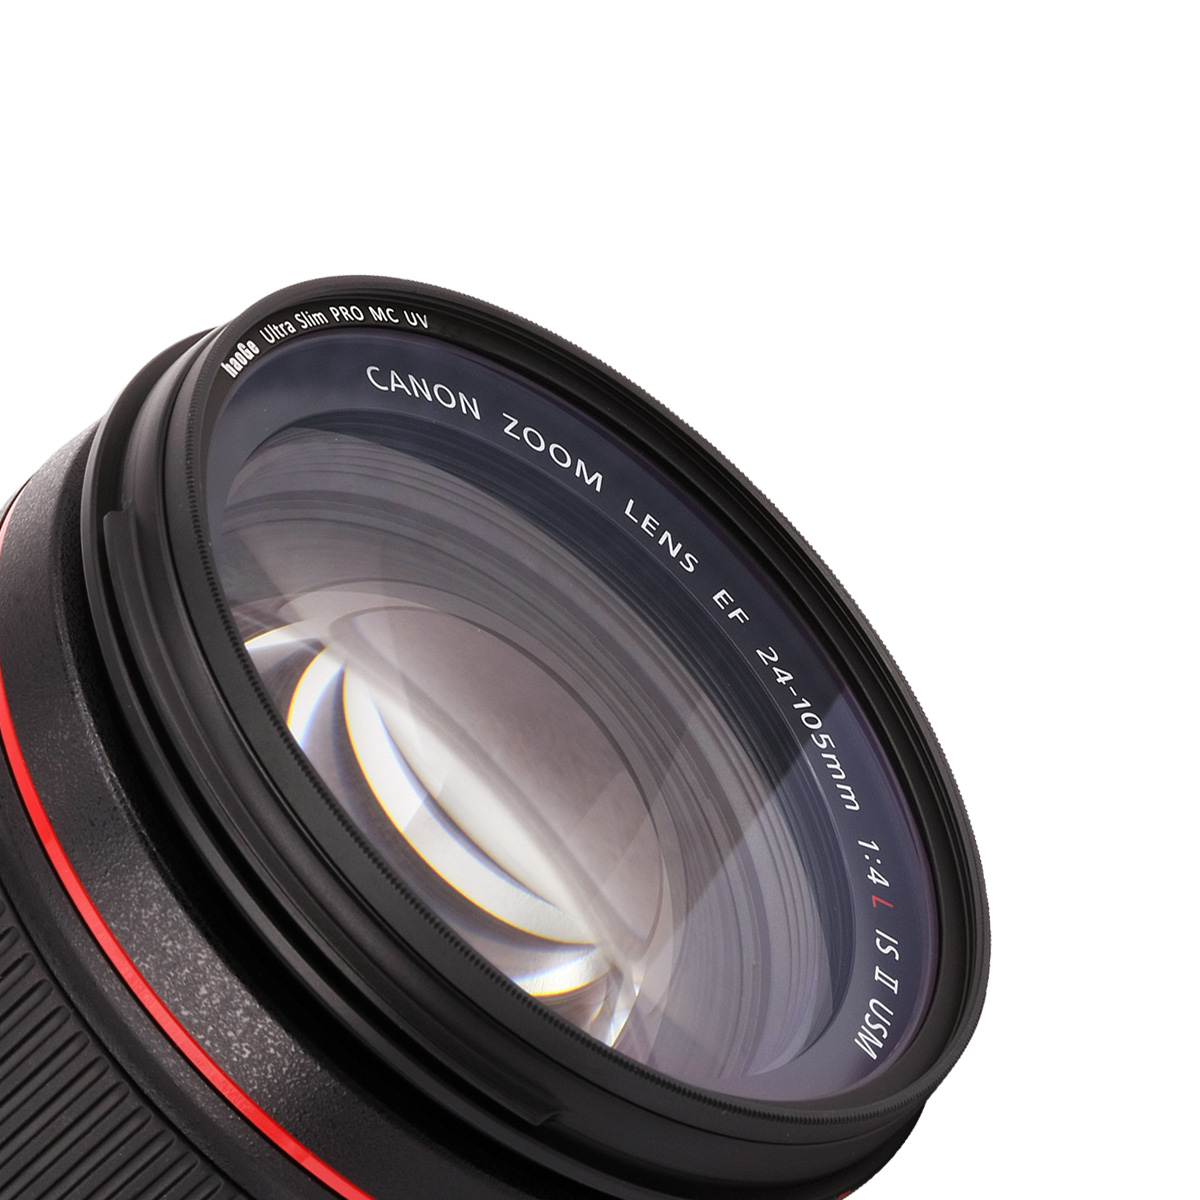 55-250mm F4-5.6 is Lens Haoge 58mm Ultra Slim MC UV Protection Multicoated Ultraviolet Lens Filter for Canon 800D 700D 200D 1300D 60D with EF-S 18-55mm f4-5.6 is